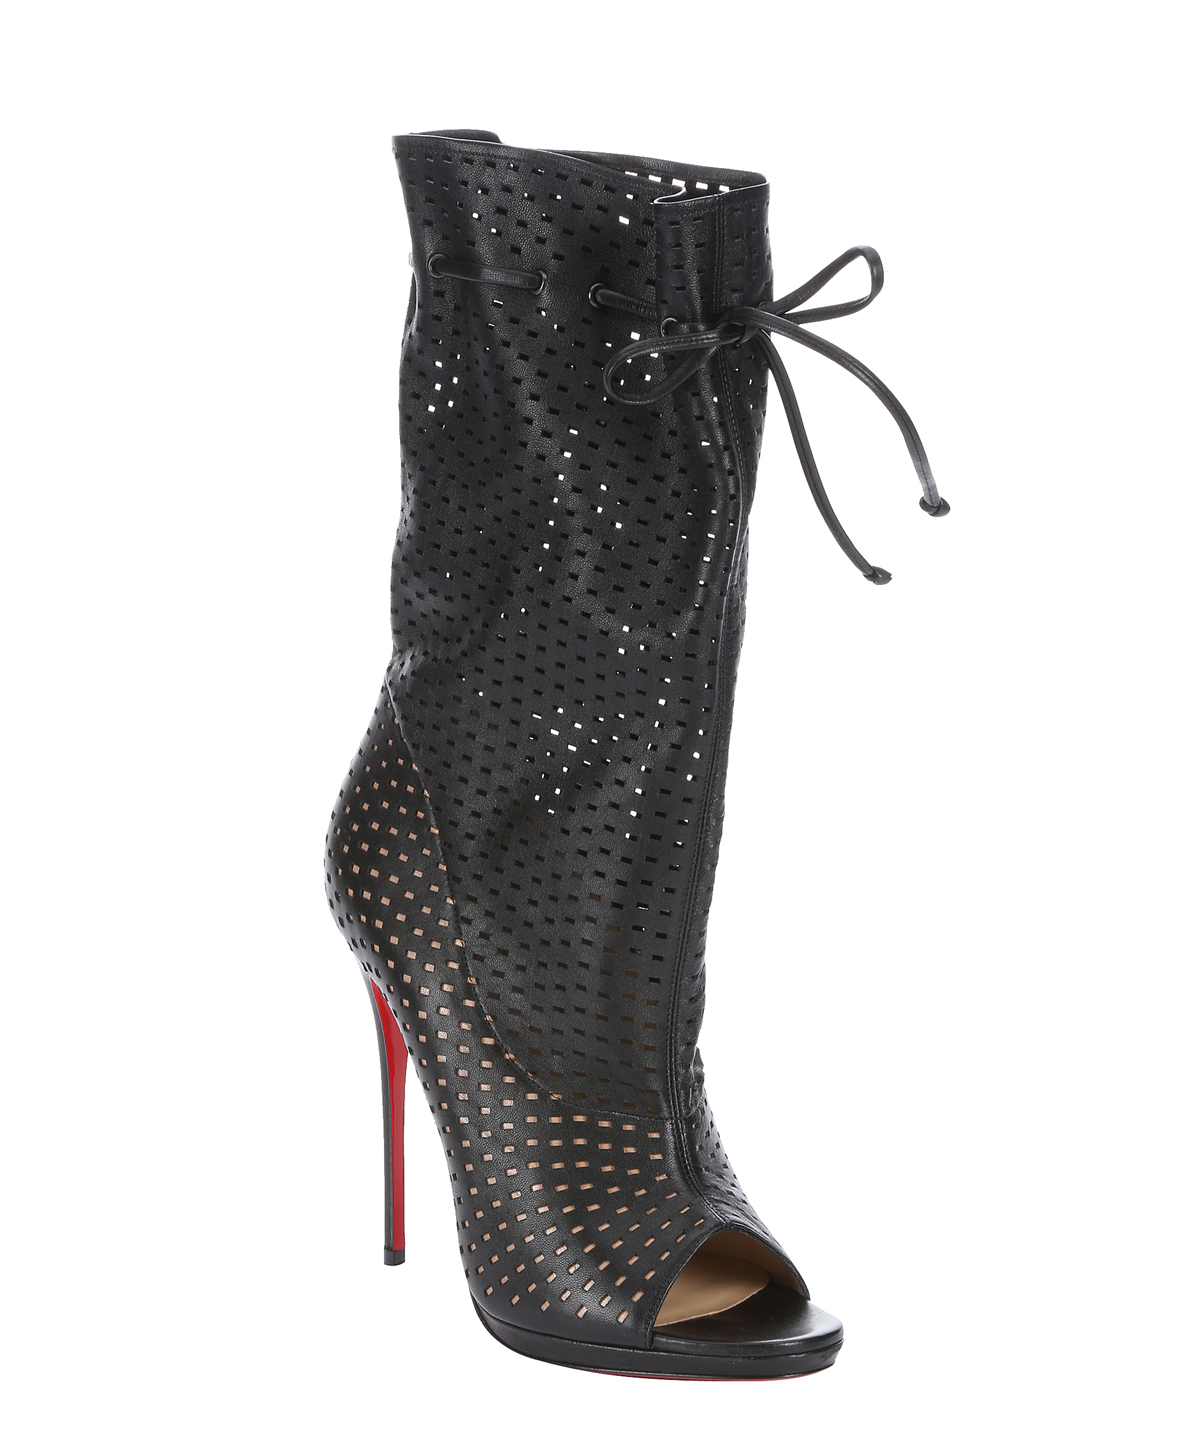 CHRISTIAN LOUBOUTIN Black Perforated Leather 'Jennifer 120' Open-Toe Boots' at Bluefly